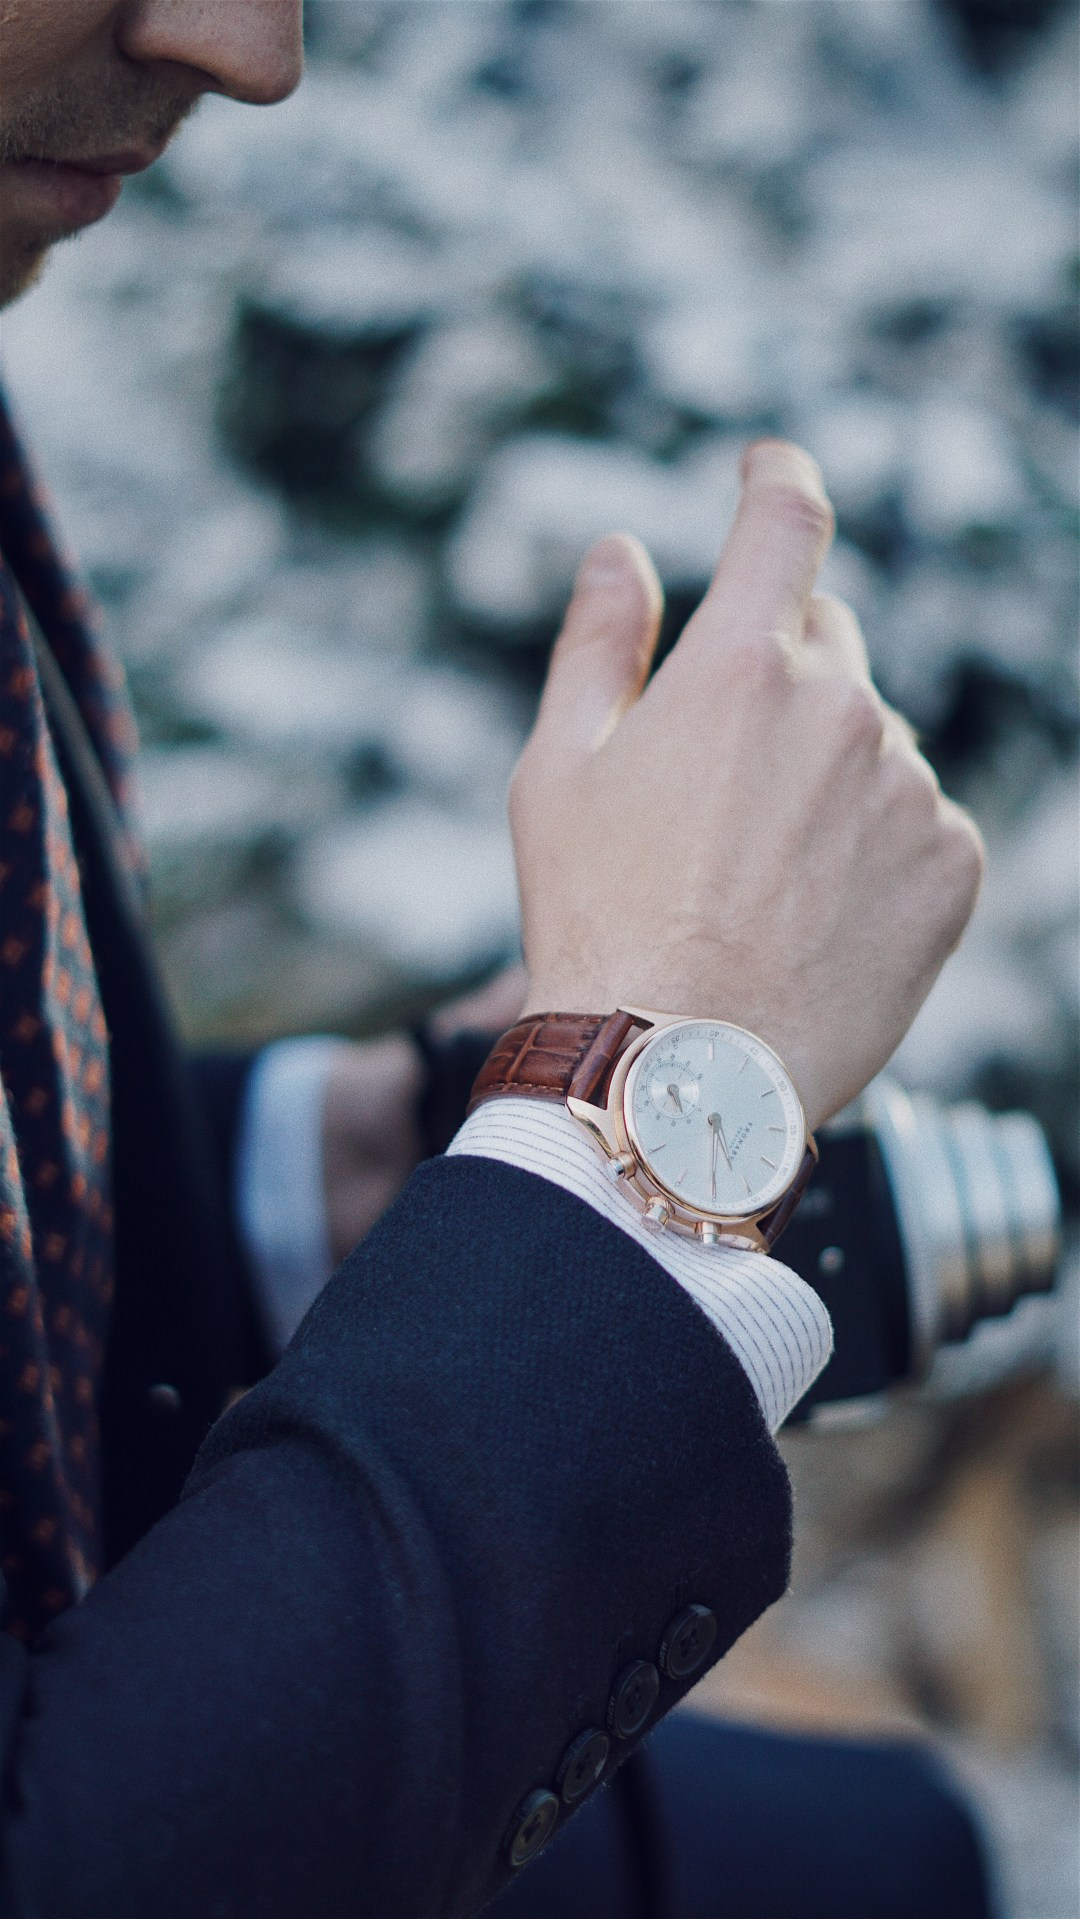 The Party Season at Debenhams. The Winter Forest at Broadgate. Wearing Sekel Role Gold Watch With Silver Dial and Brown Leather Strap from Kronaby Sweden. Blog by Skirmantas Petraitis.